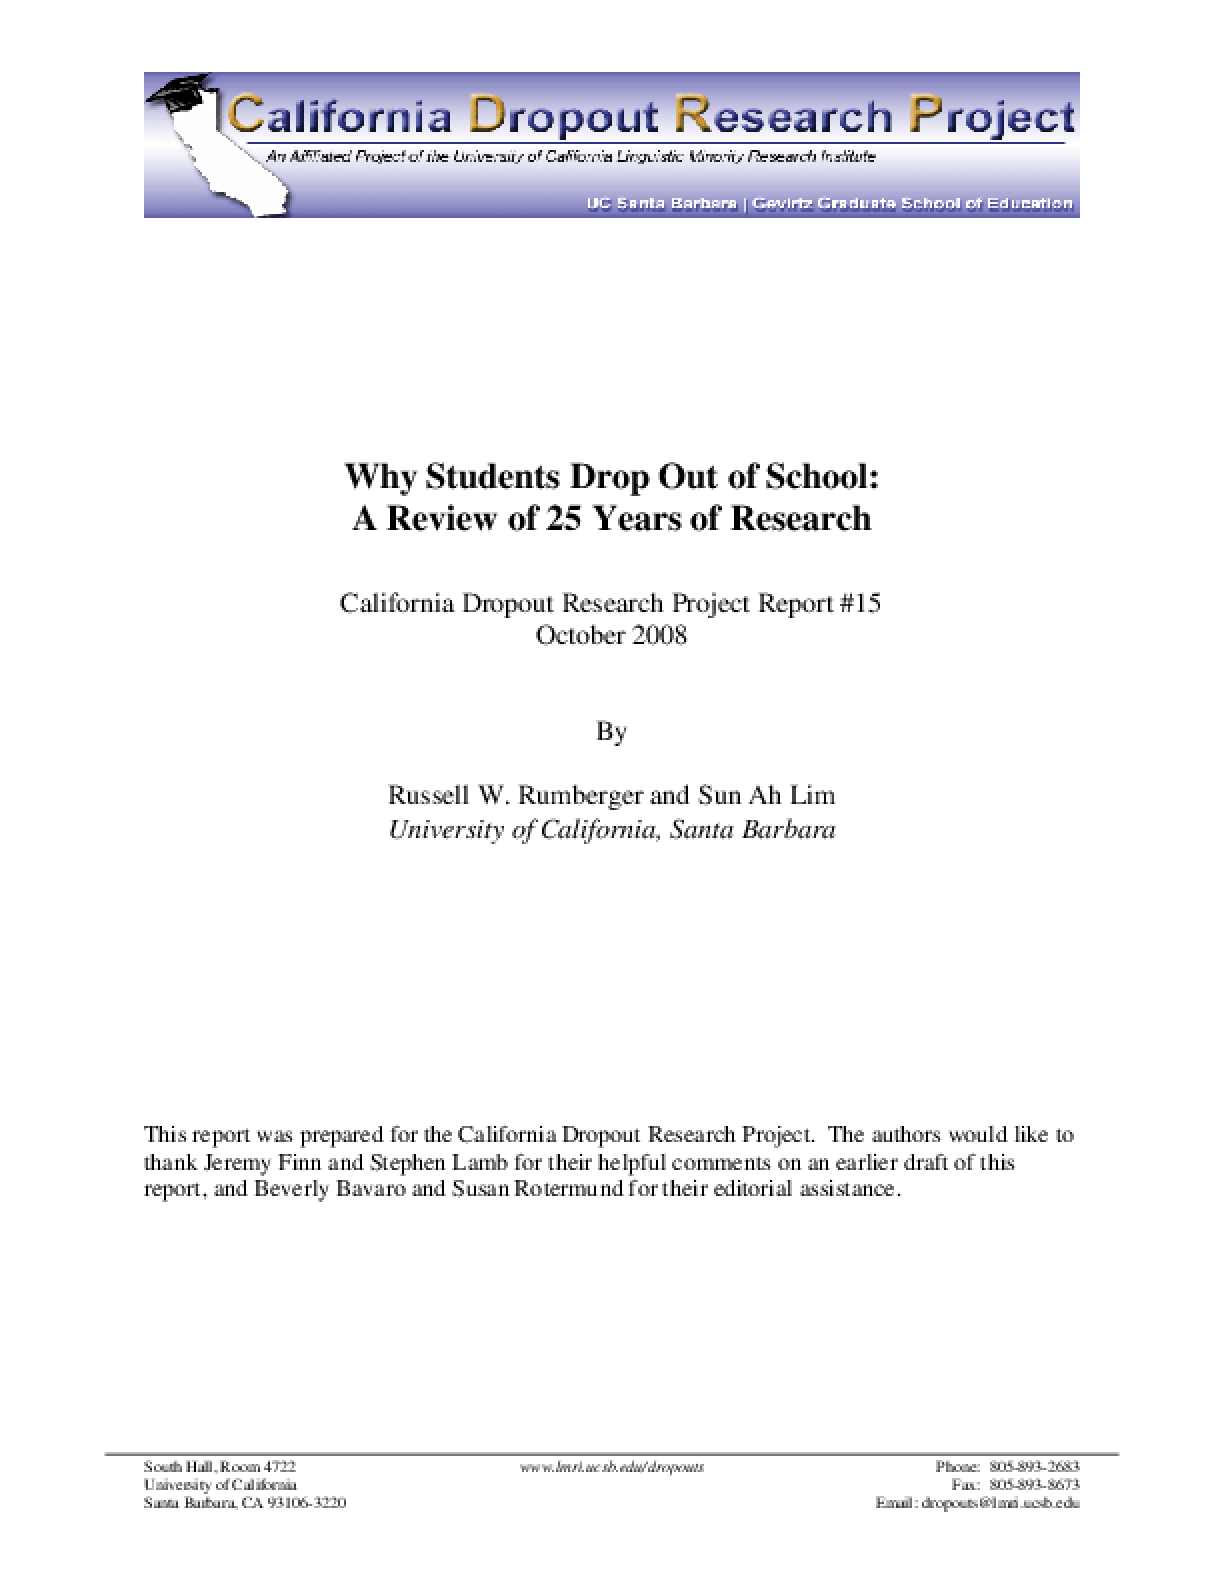 Why Students Drop Out of School: A Review of 25 Years of Research